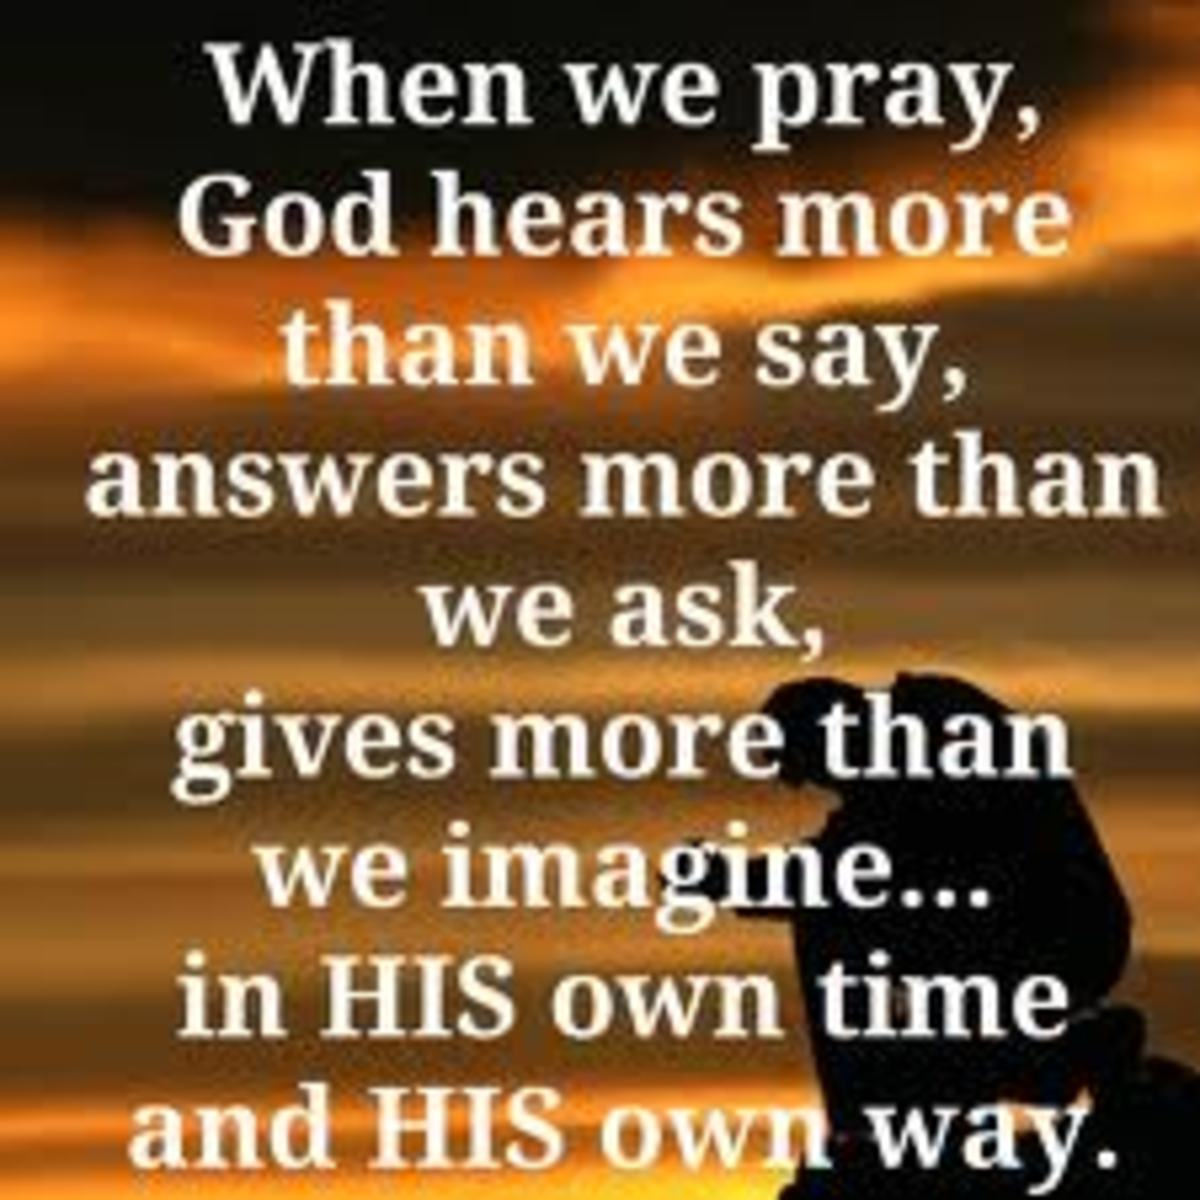 Whatever we do, we need to believe in what we are doing, here I believe in God and religions, so, I need to pray God with all my heart, my soul and my mind earnestly in the hope that God would hear my prayer and would guide and help me.